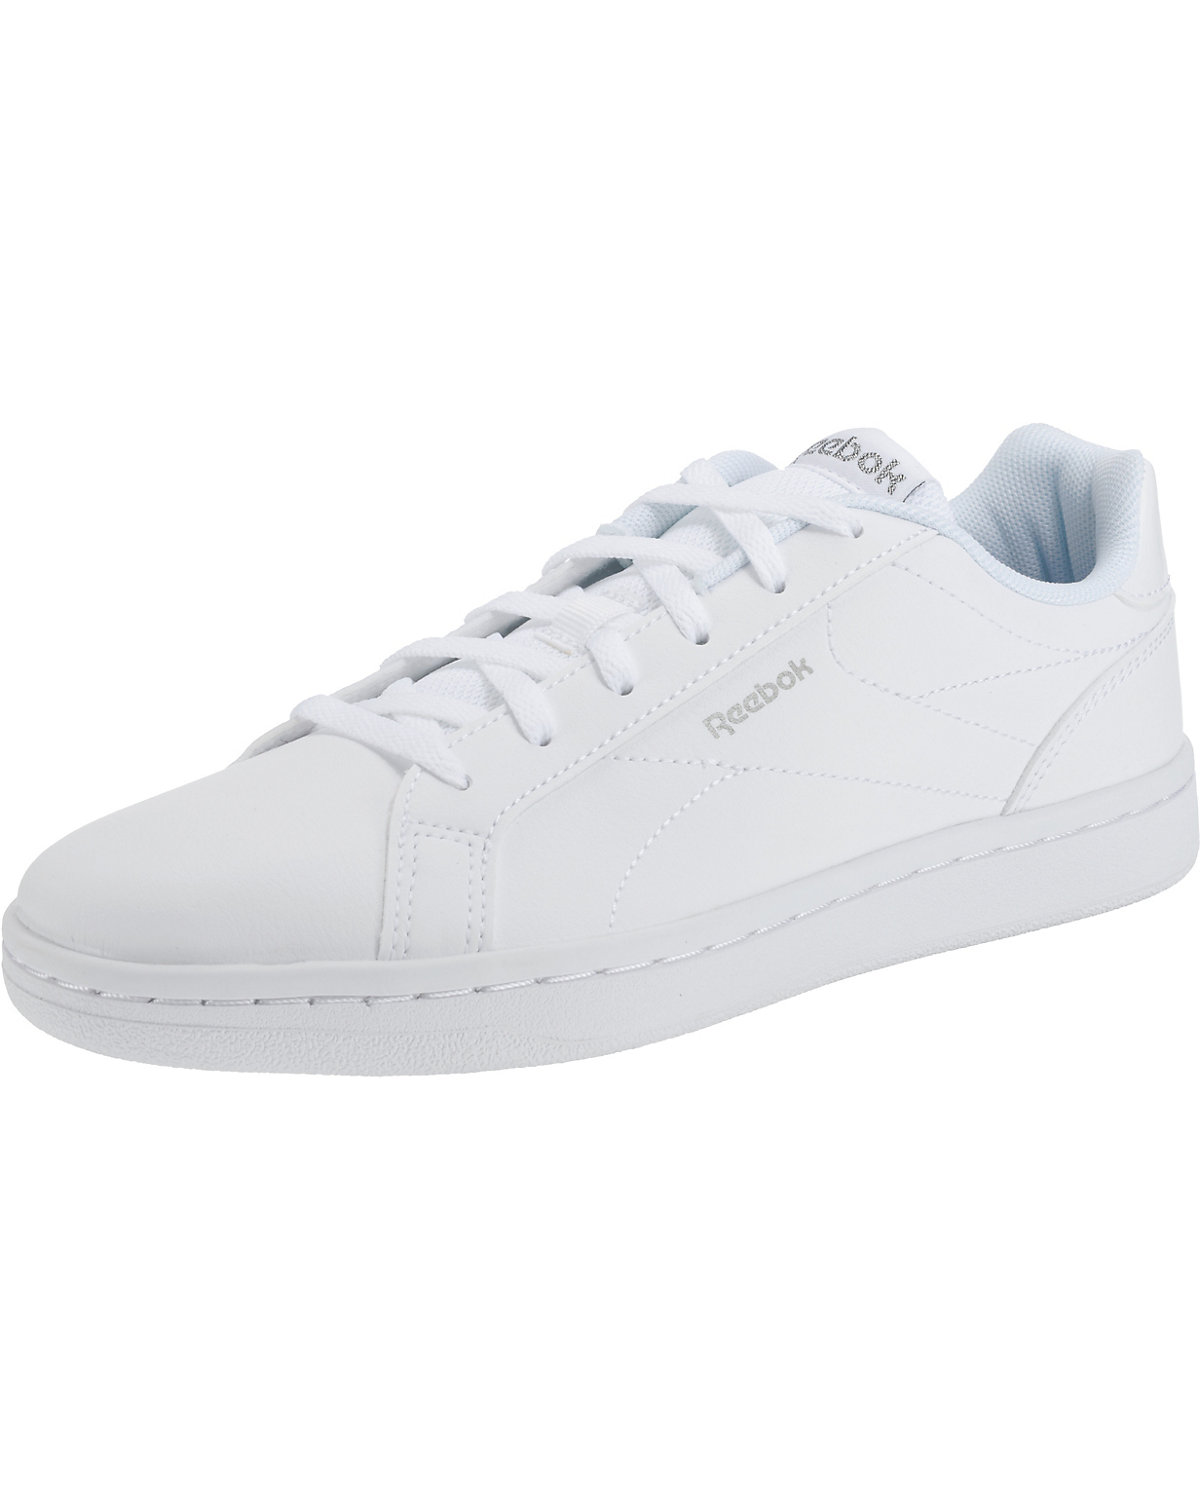 Reebok, REEBOK ROYAL COMPLETE CLN Sneakers Low, weiß